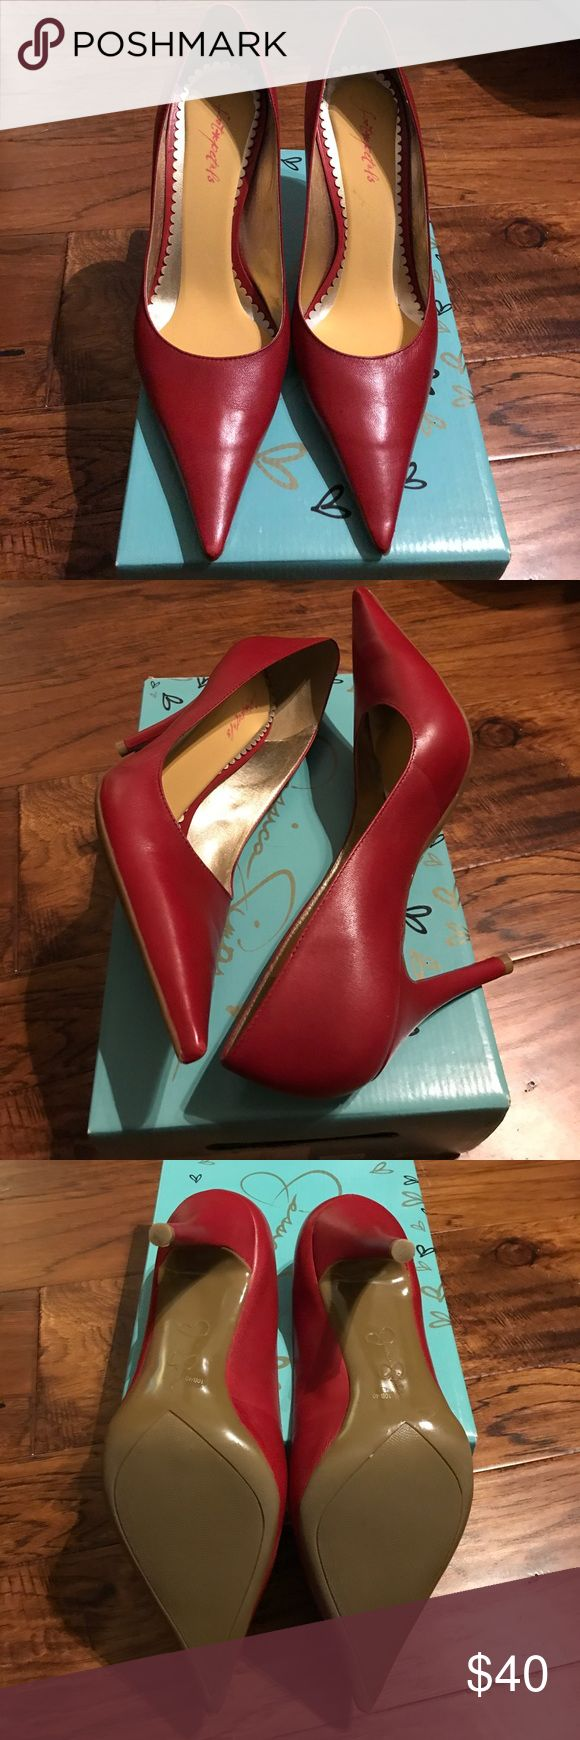 Jessica Simpson Red Ness pumps 10m Only worn once and still in original box. Heel height 4 inches. Jessica Simpson Shoes Heels